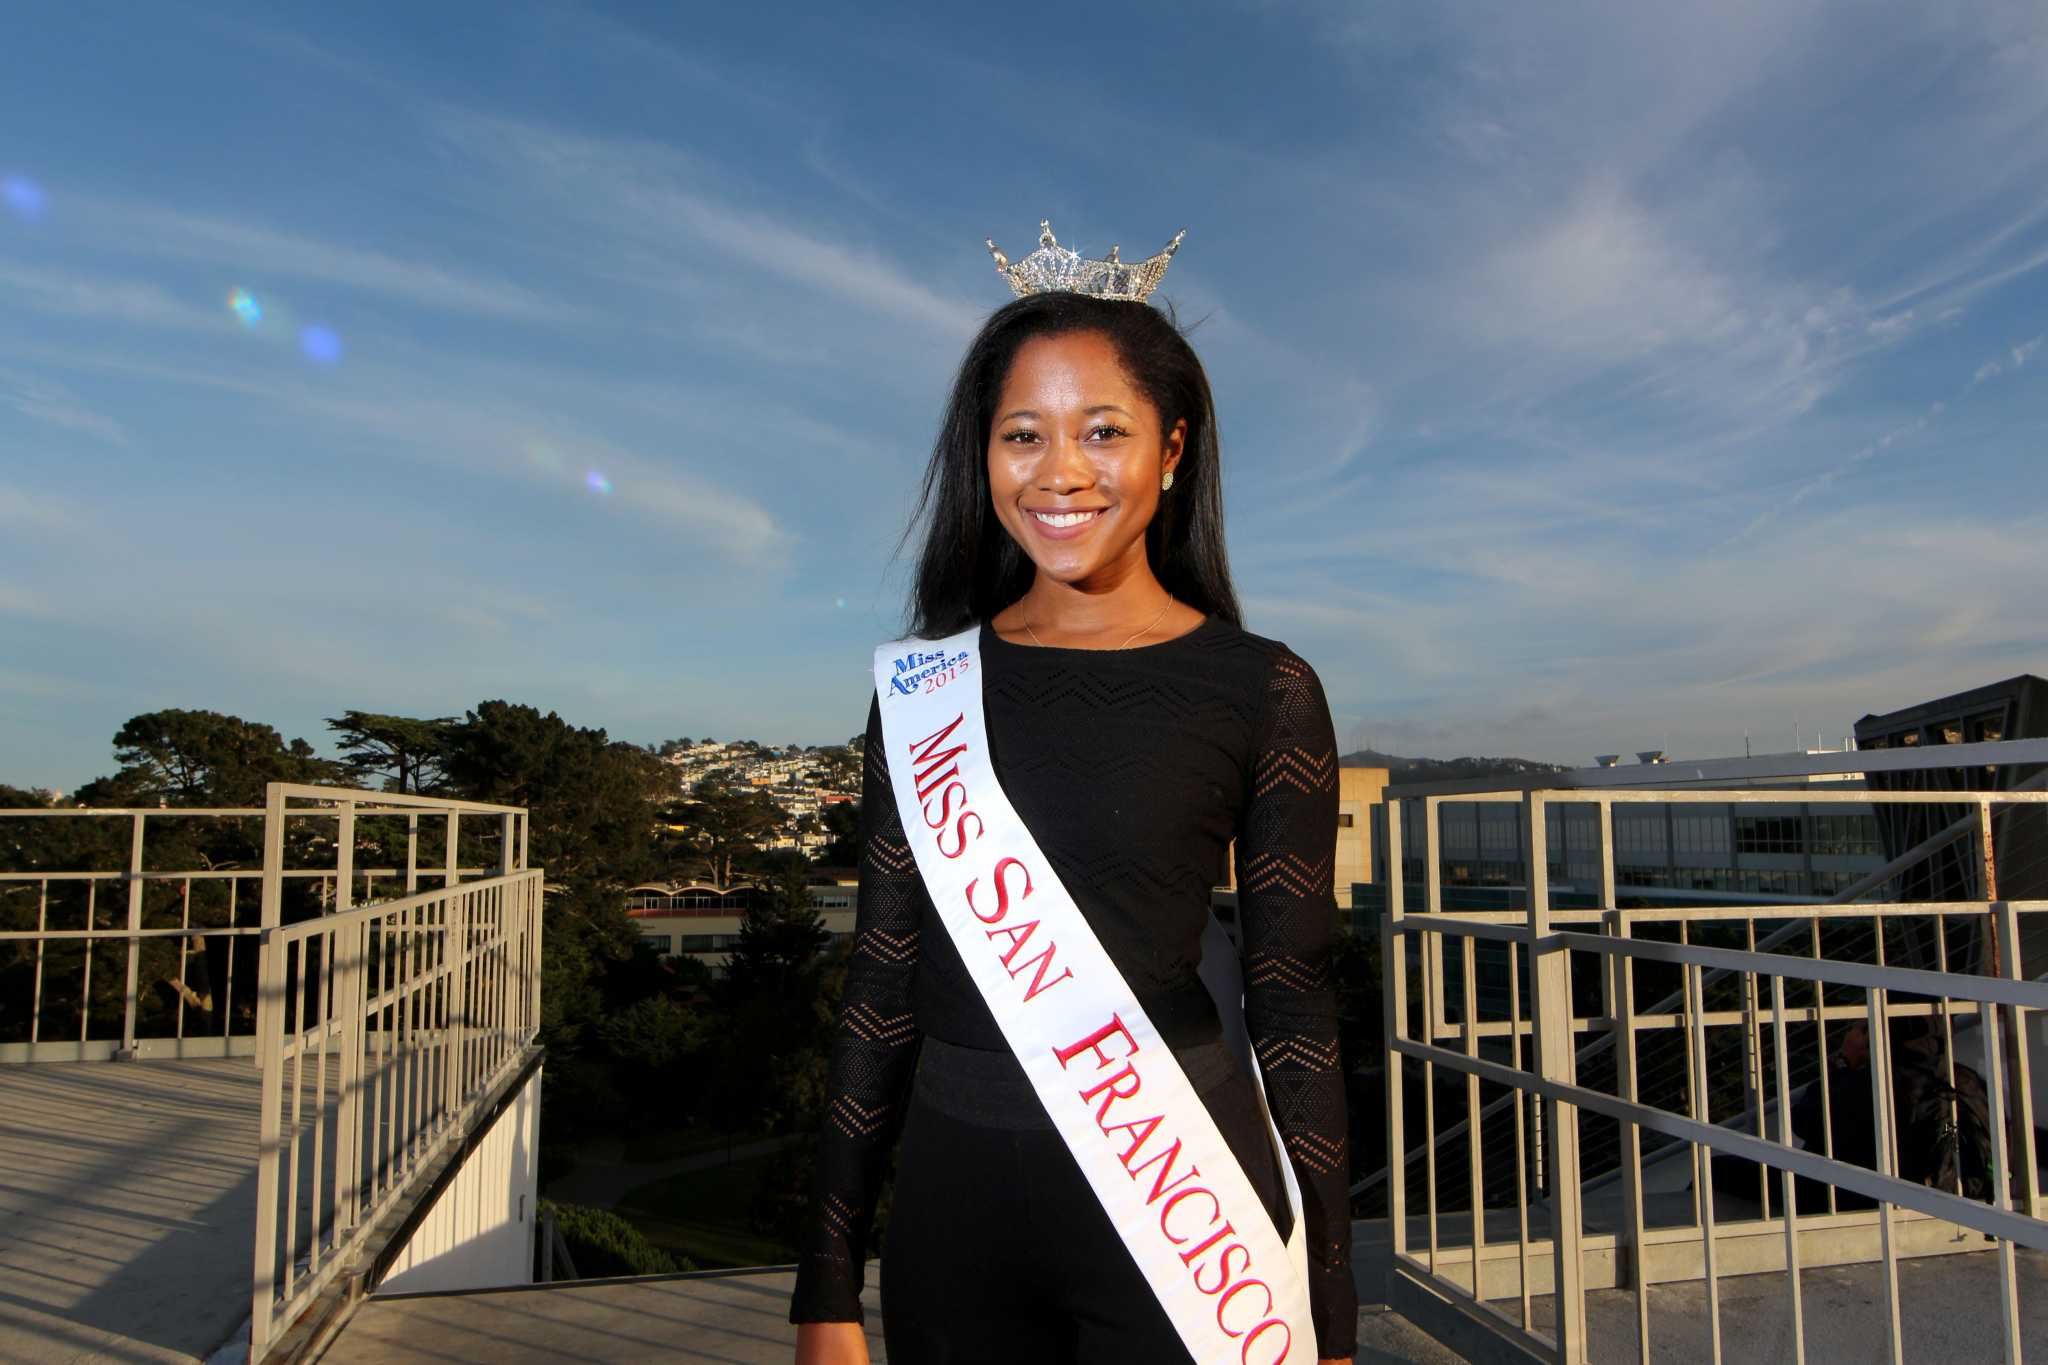 Felicia Stiles, Miss San Francisco 2015, poses for a portrait at SF State Tuesday, Nov. 17, 2015. (James Chan / Xpress)